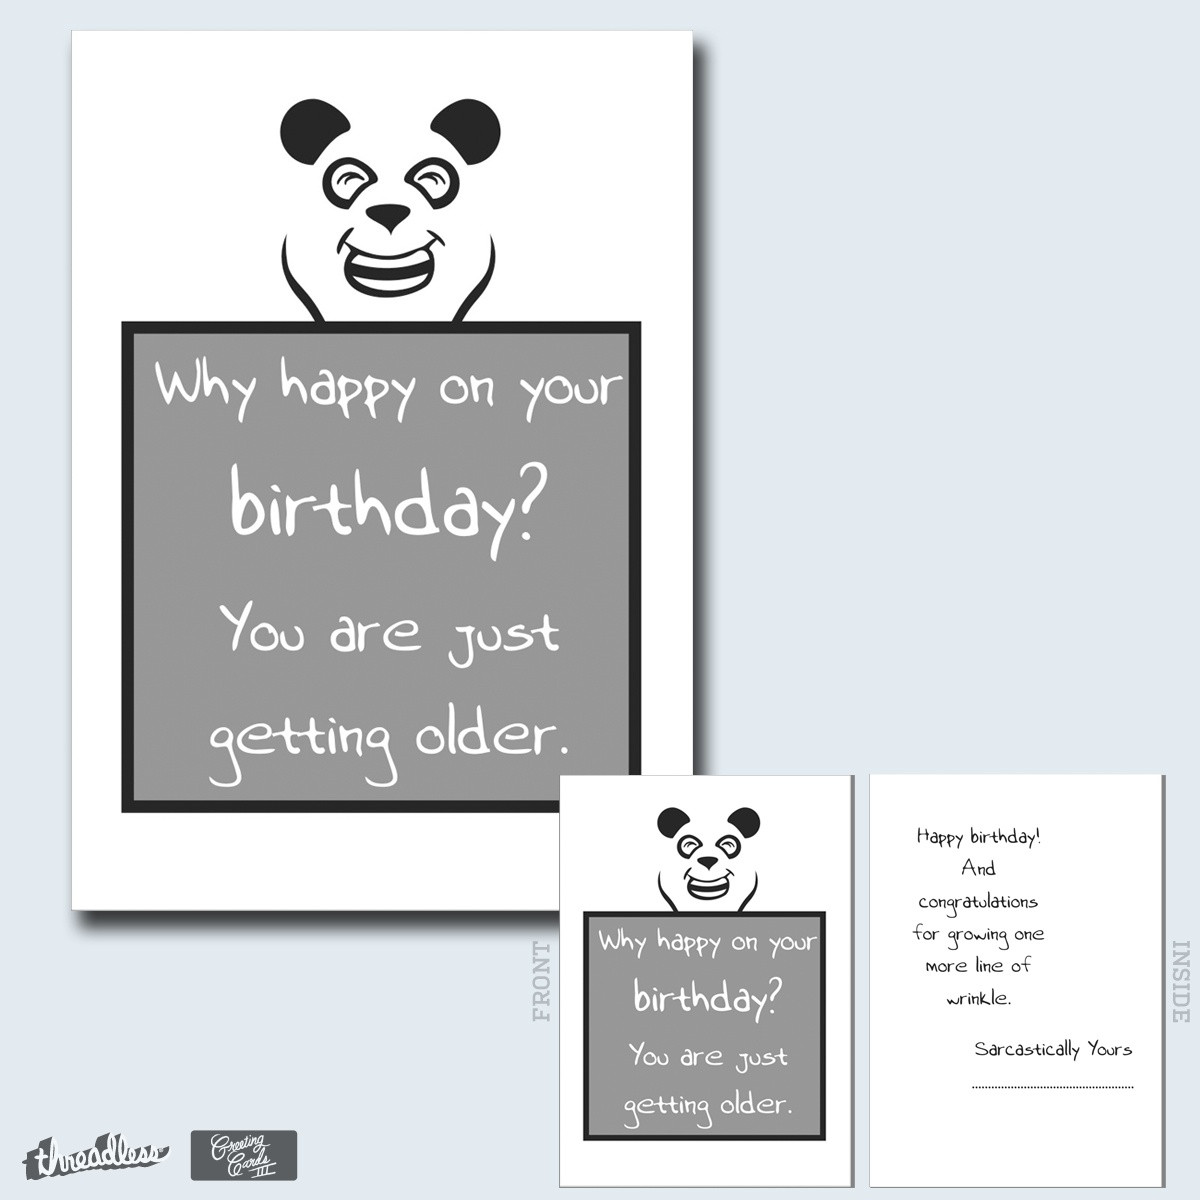 Best ideas about Sarcastic Birthday Wishes . Save or Pin Score Sarcastic Birthday Wish by Namgyal on Threadless Now.